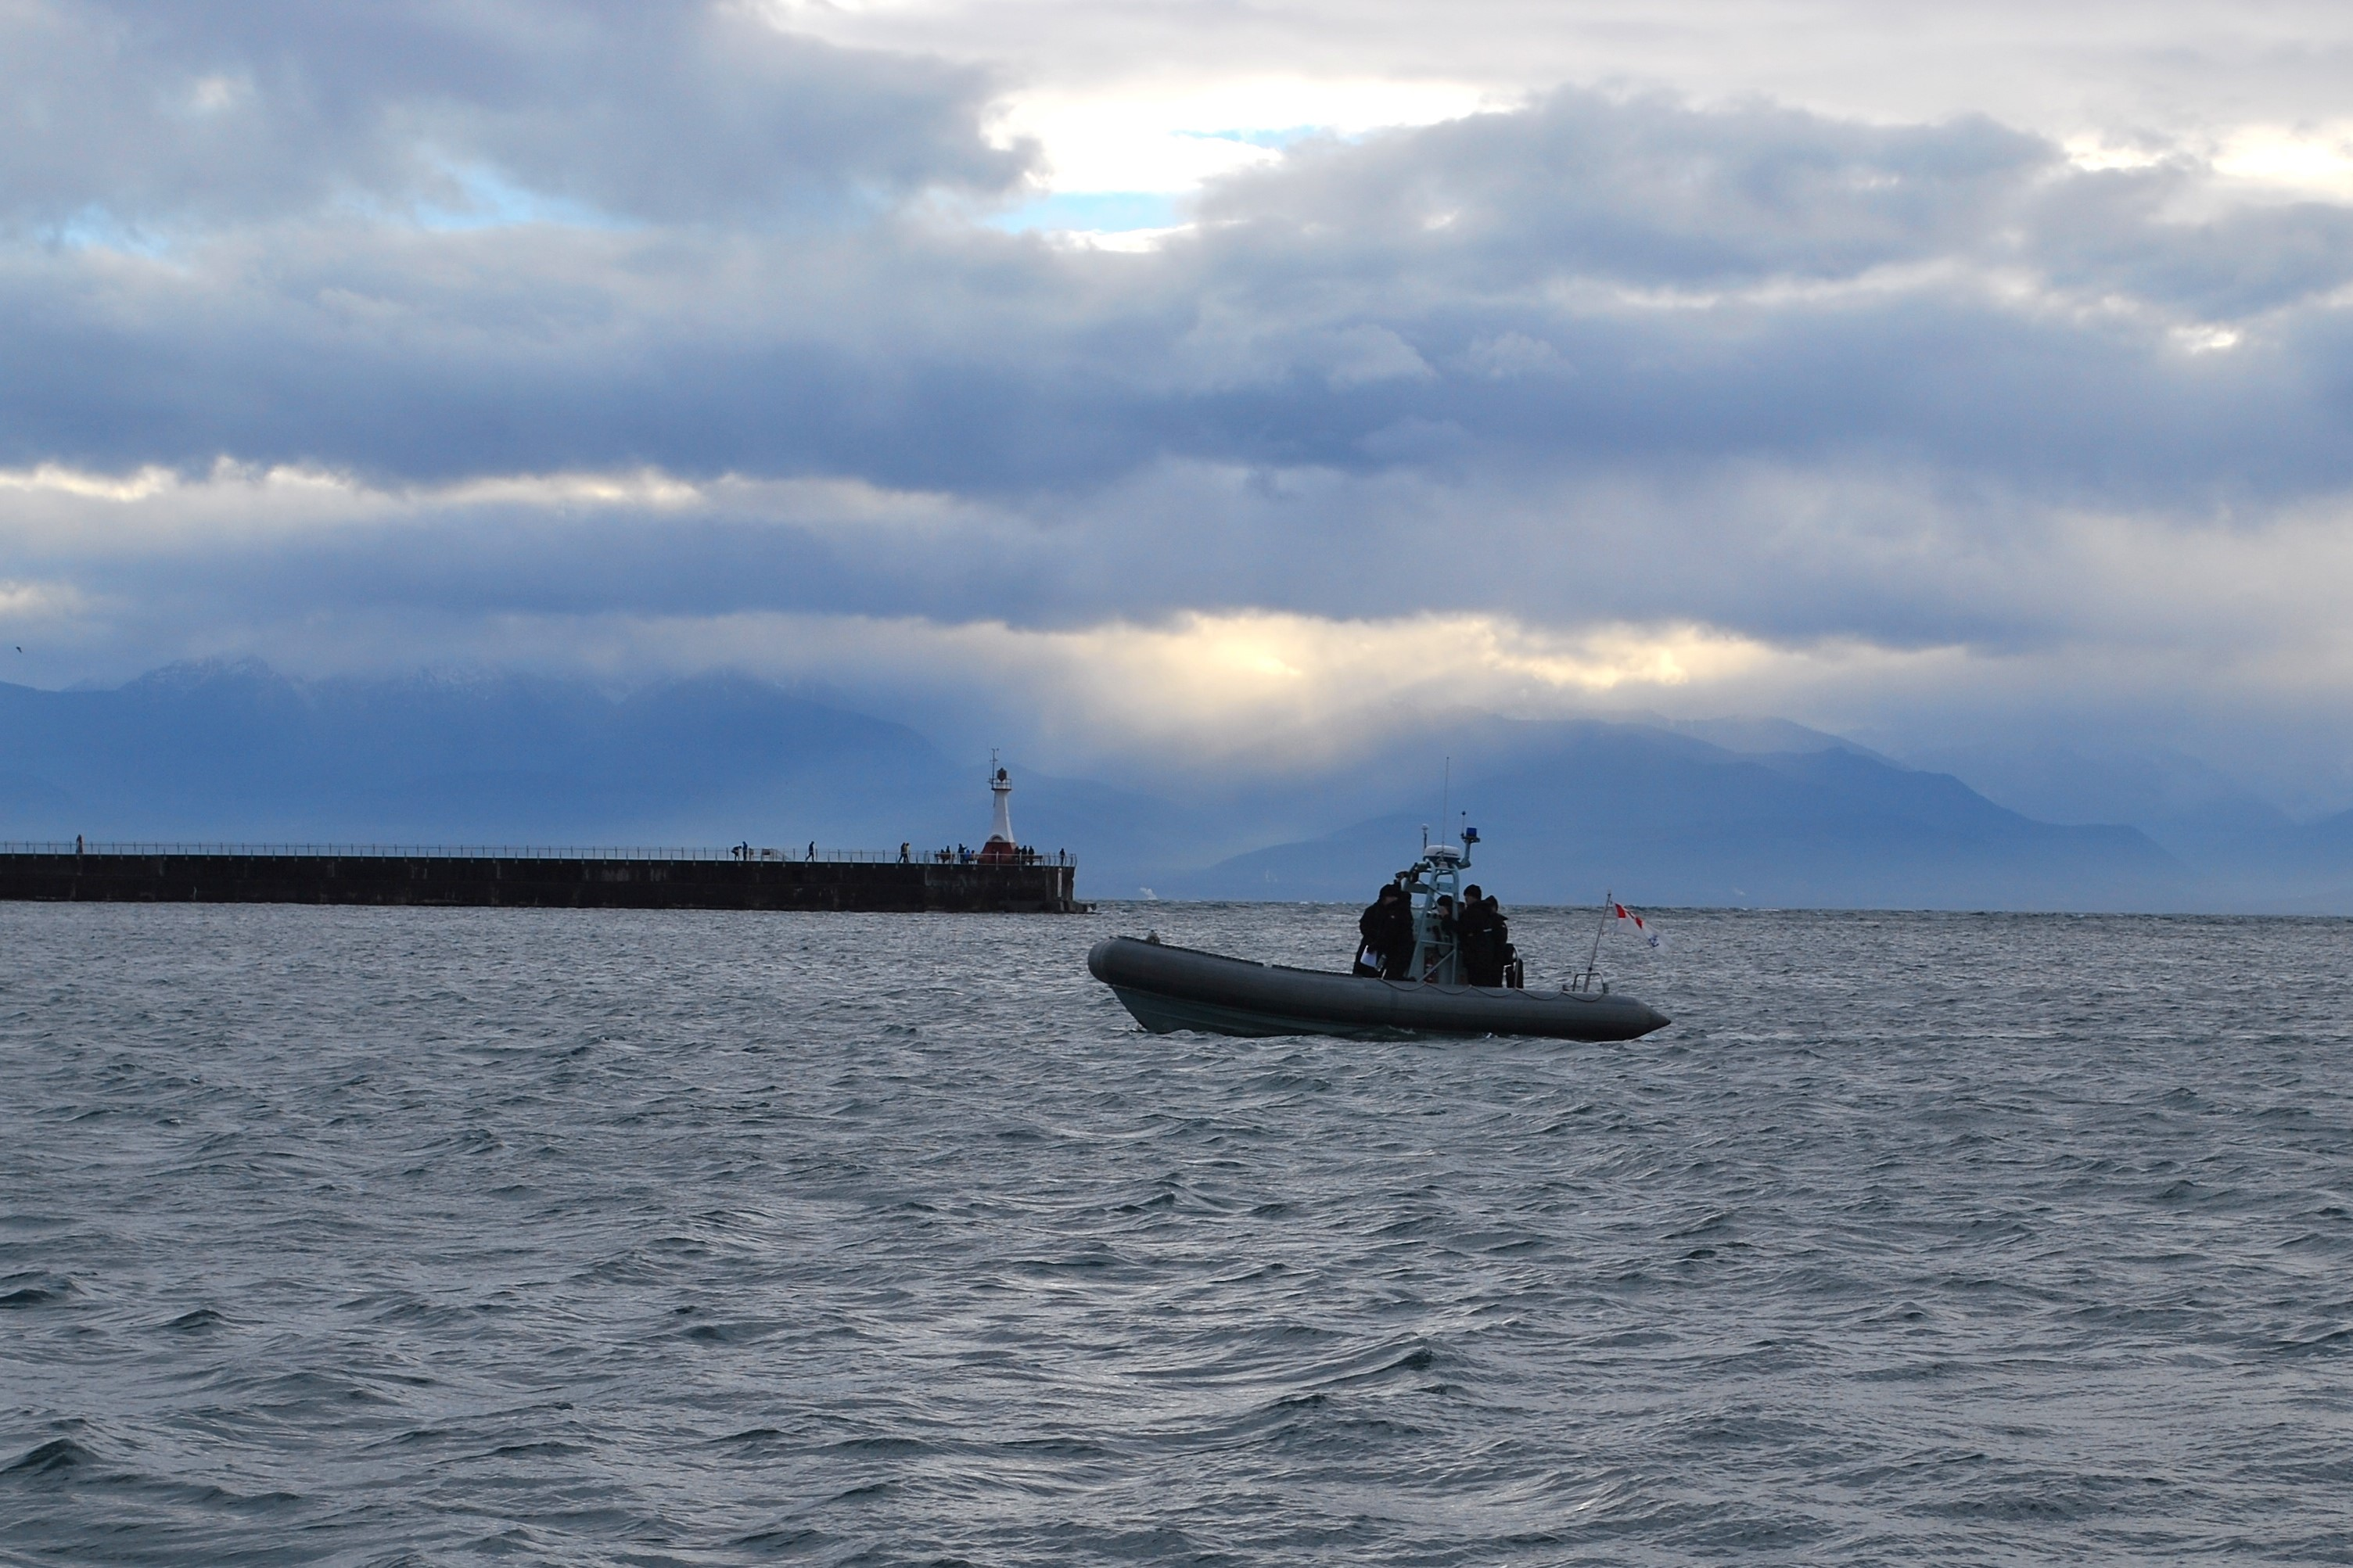 A small boat from HMCS Malahat establishes a security checkpoint near the Ogden Point breakwater at the entrance to Victoria Harbour, on Saturday October 29th, 2016.